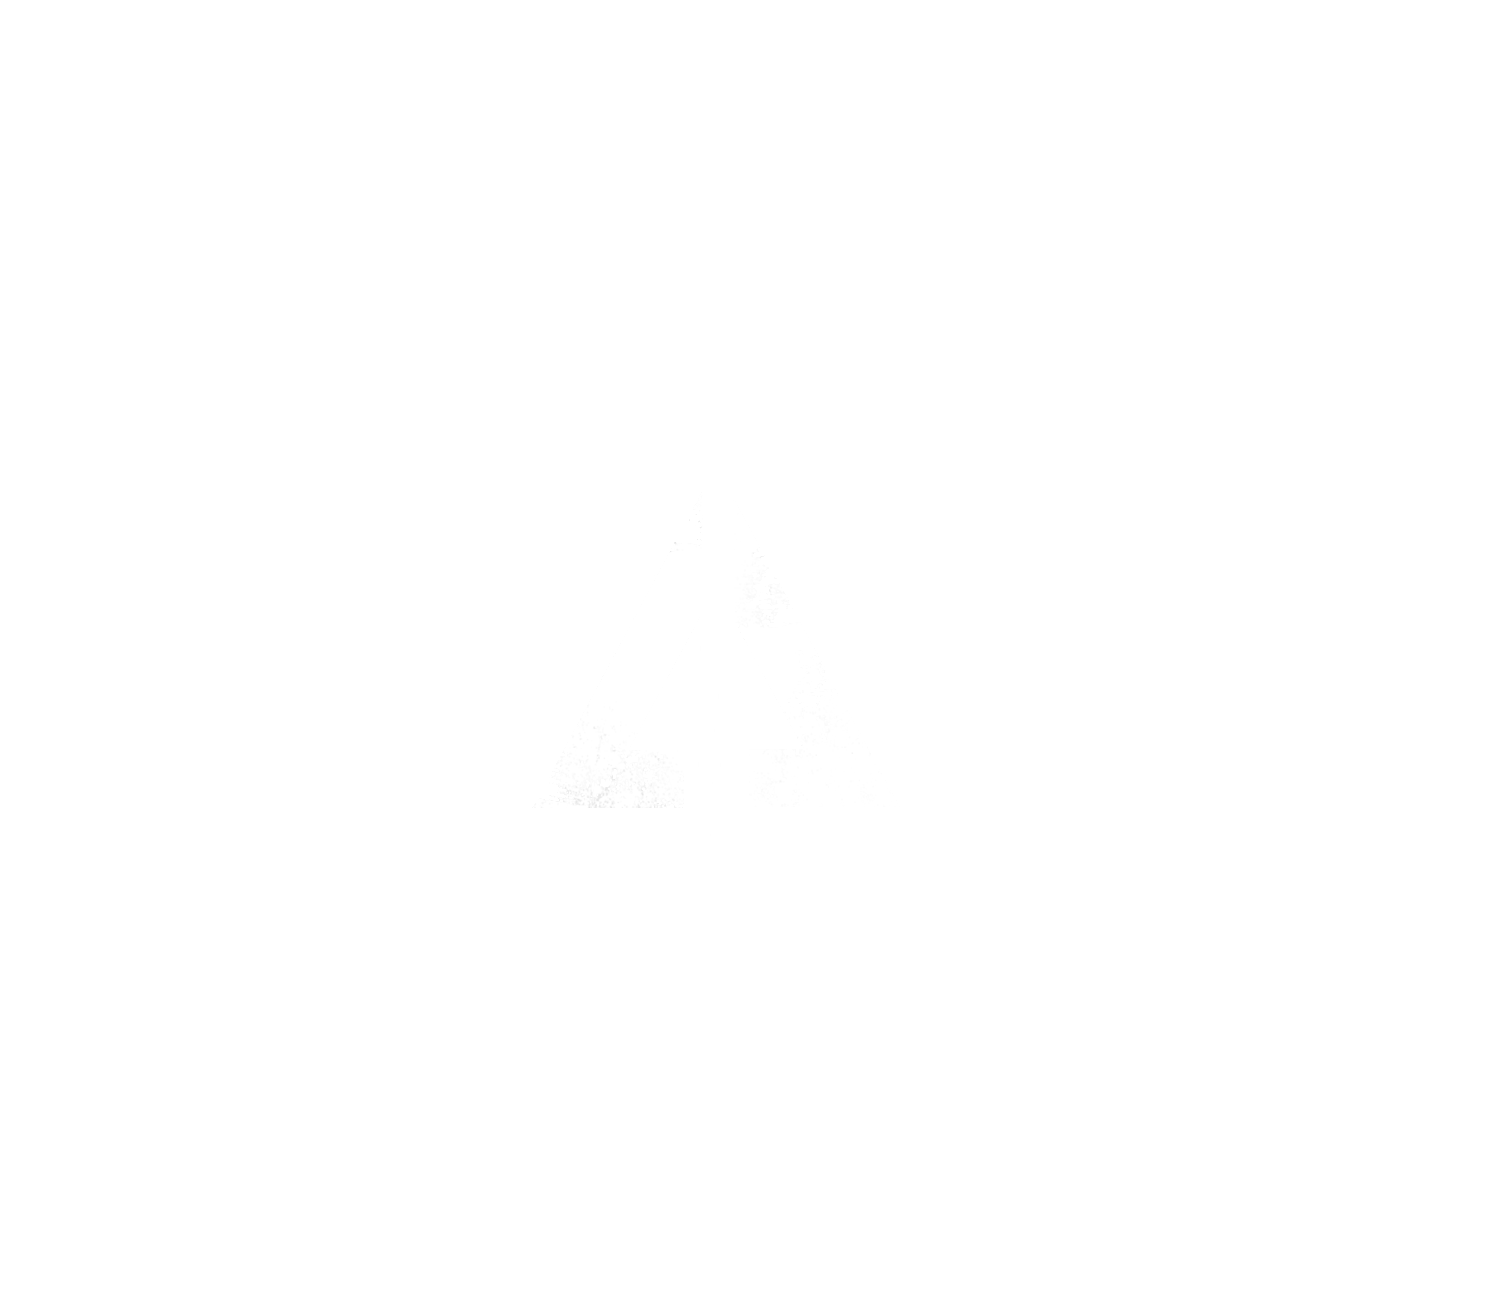 Battlesword Philly